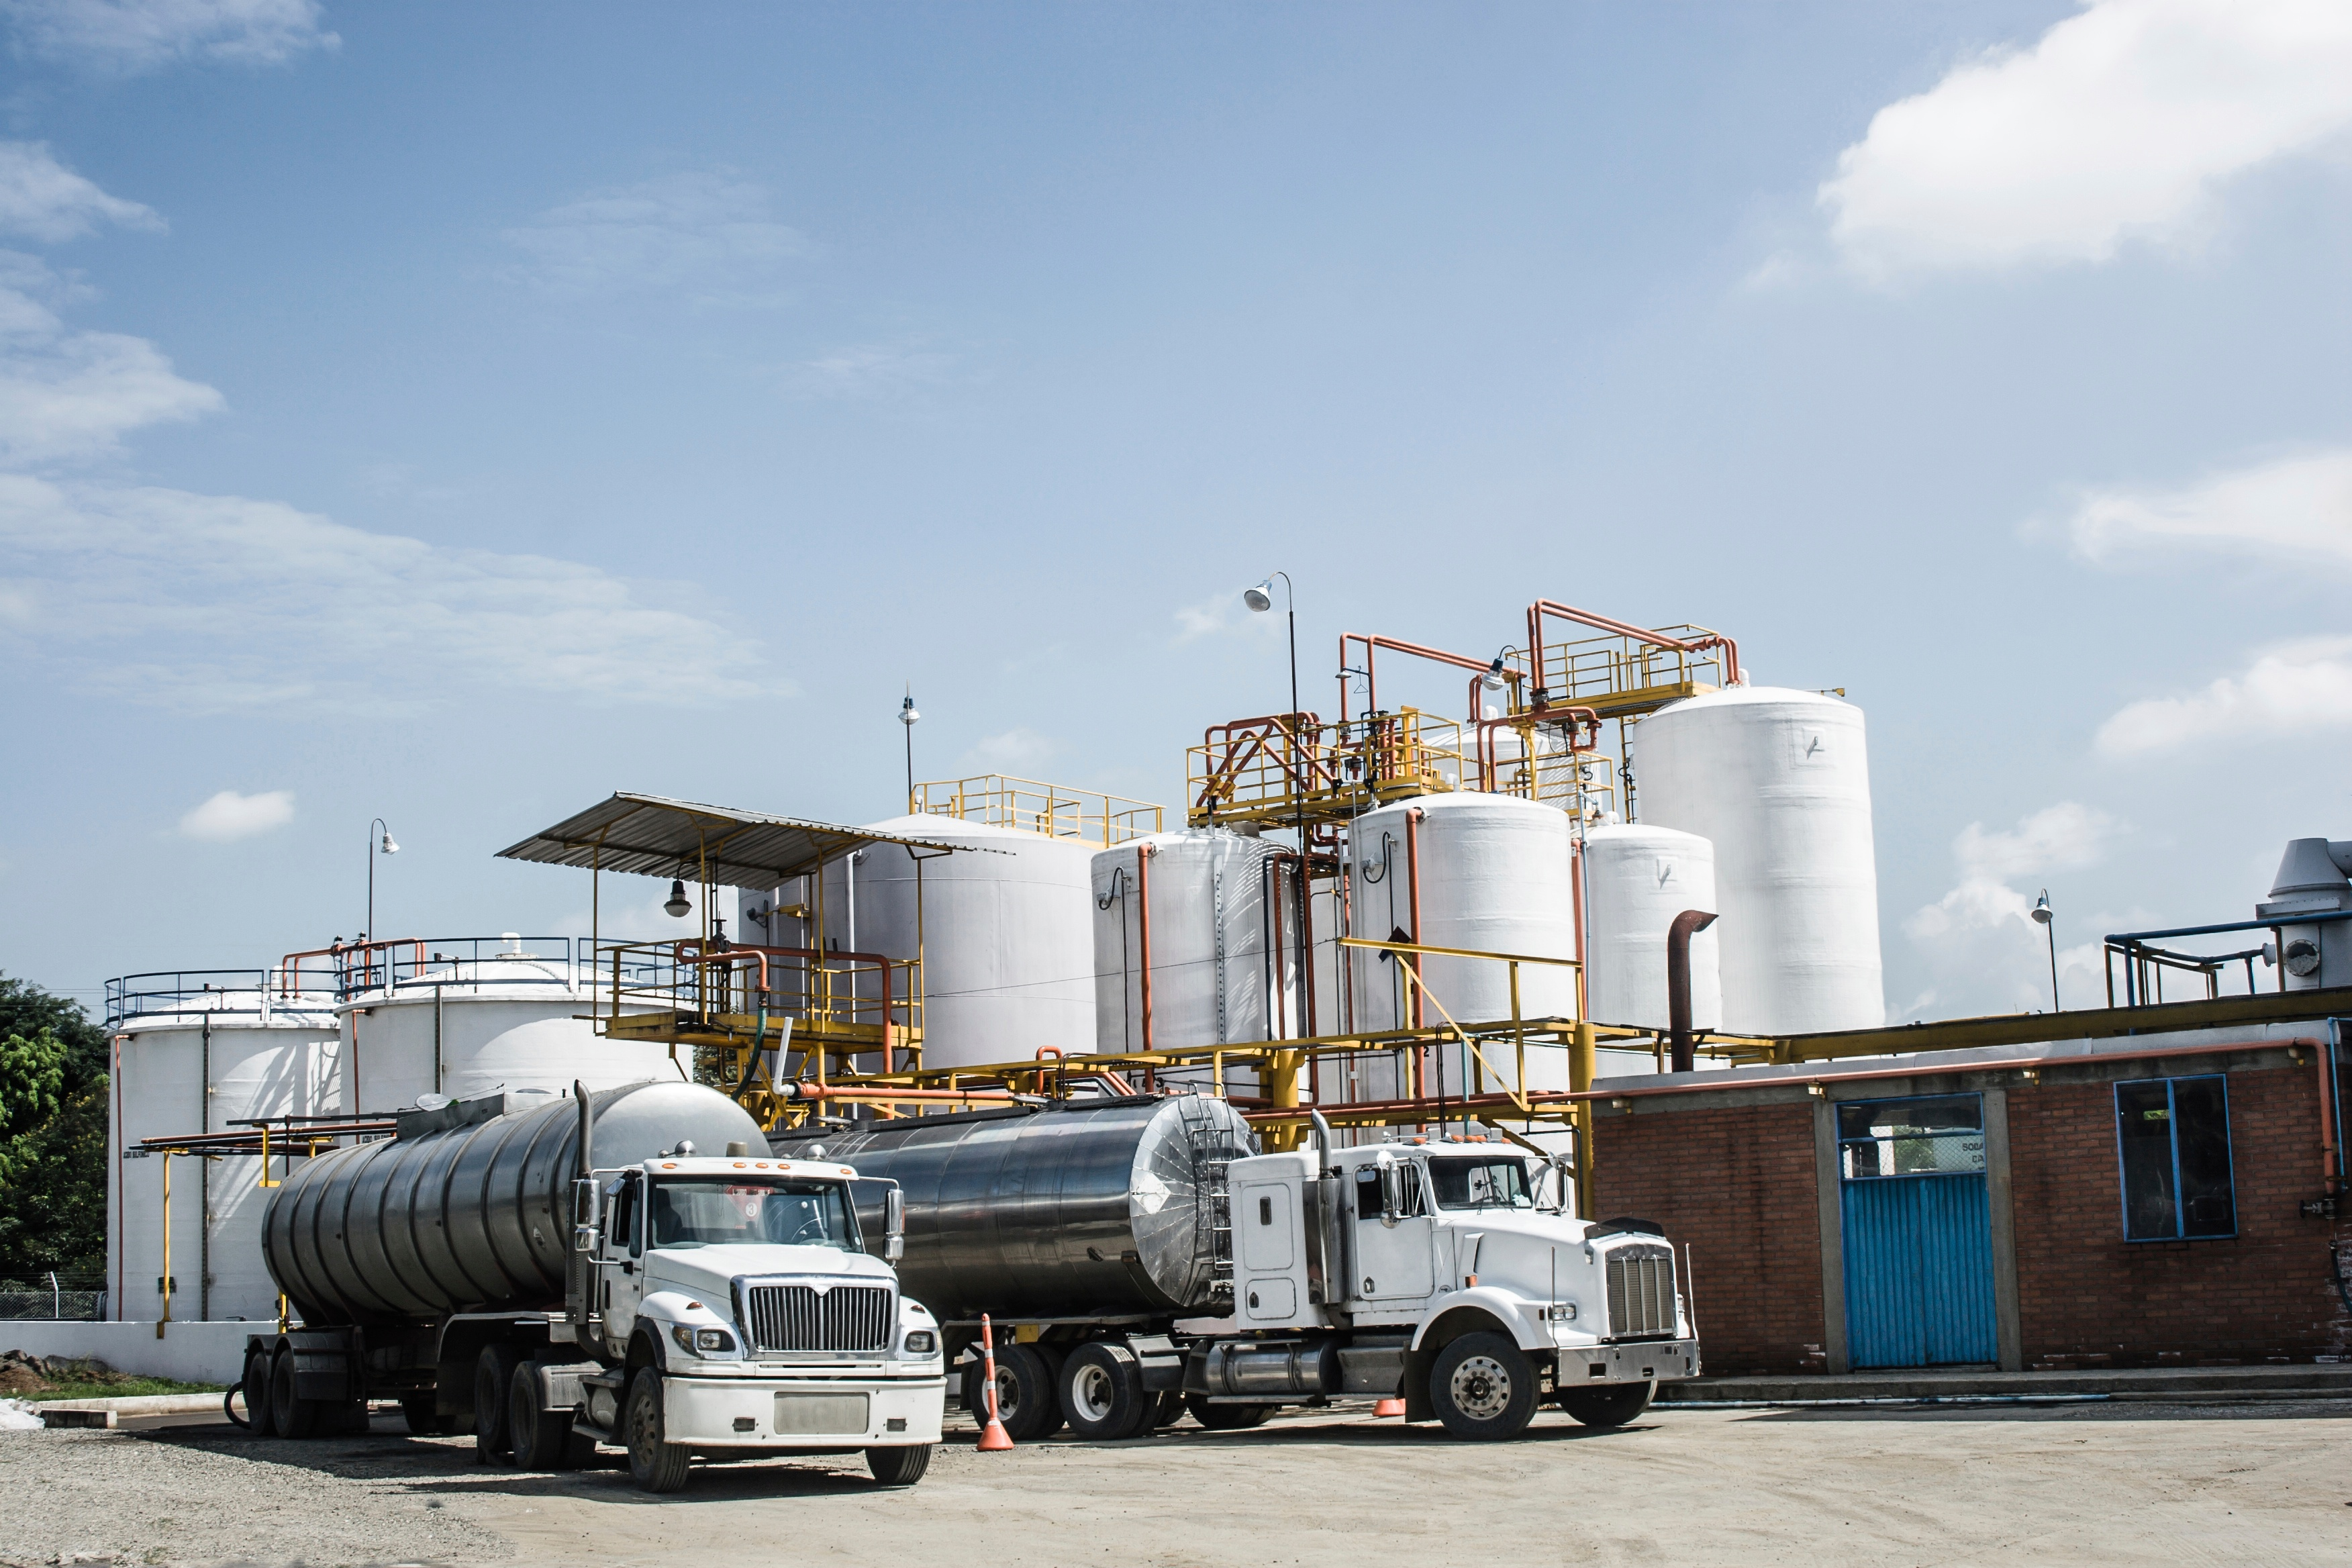 Learn the top three safety hazards associated with accessing tank trucks and how to reduce injuries.